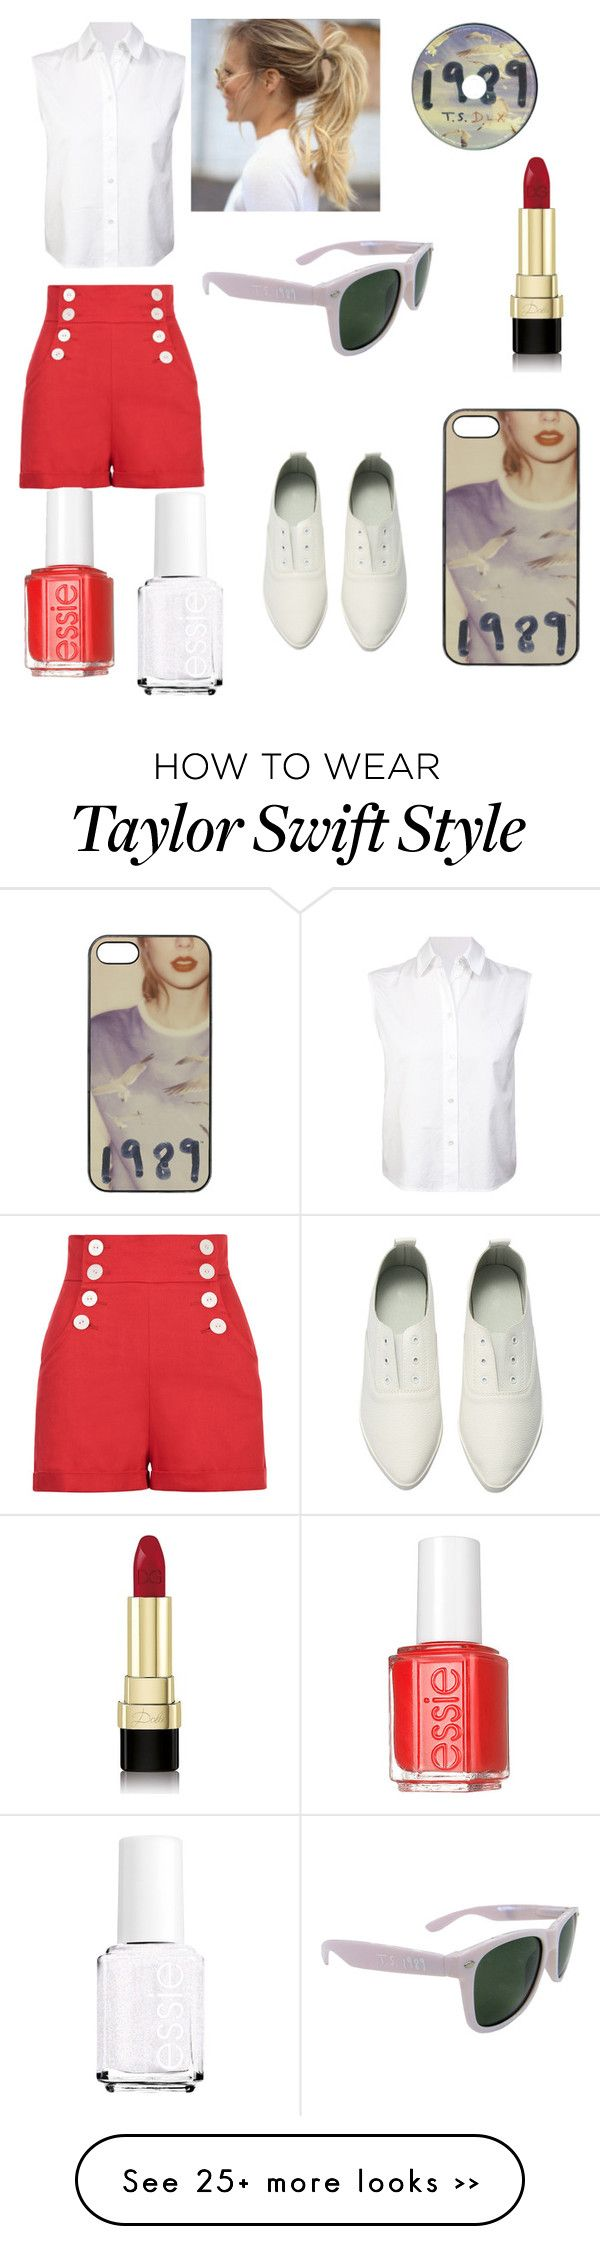 """Taylor Swifting the day//Taylor Swift"" by fashiongirlxcx on Polyvore"